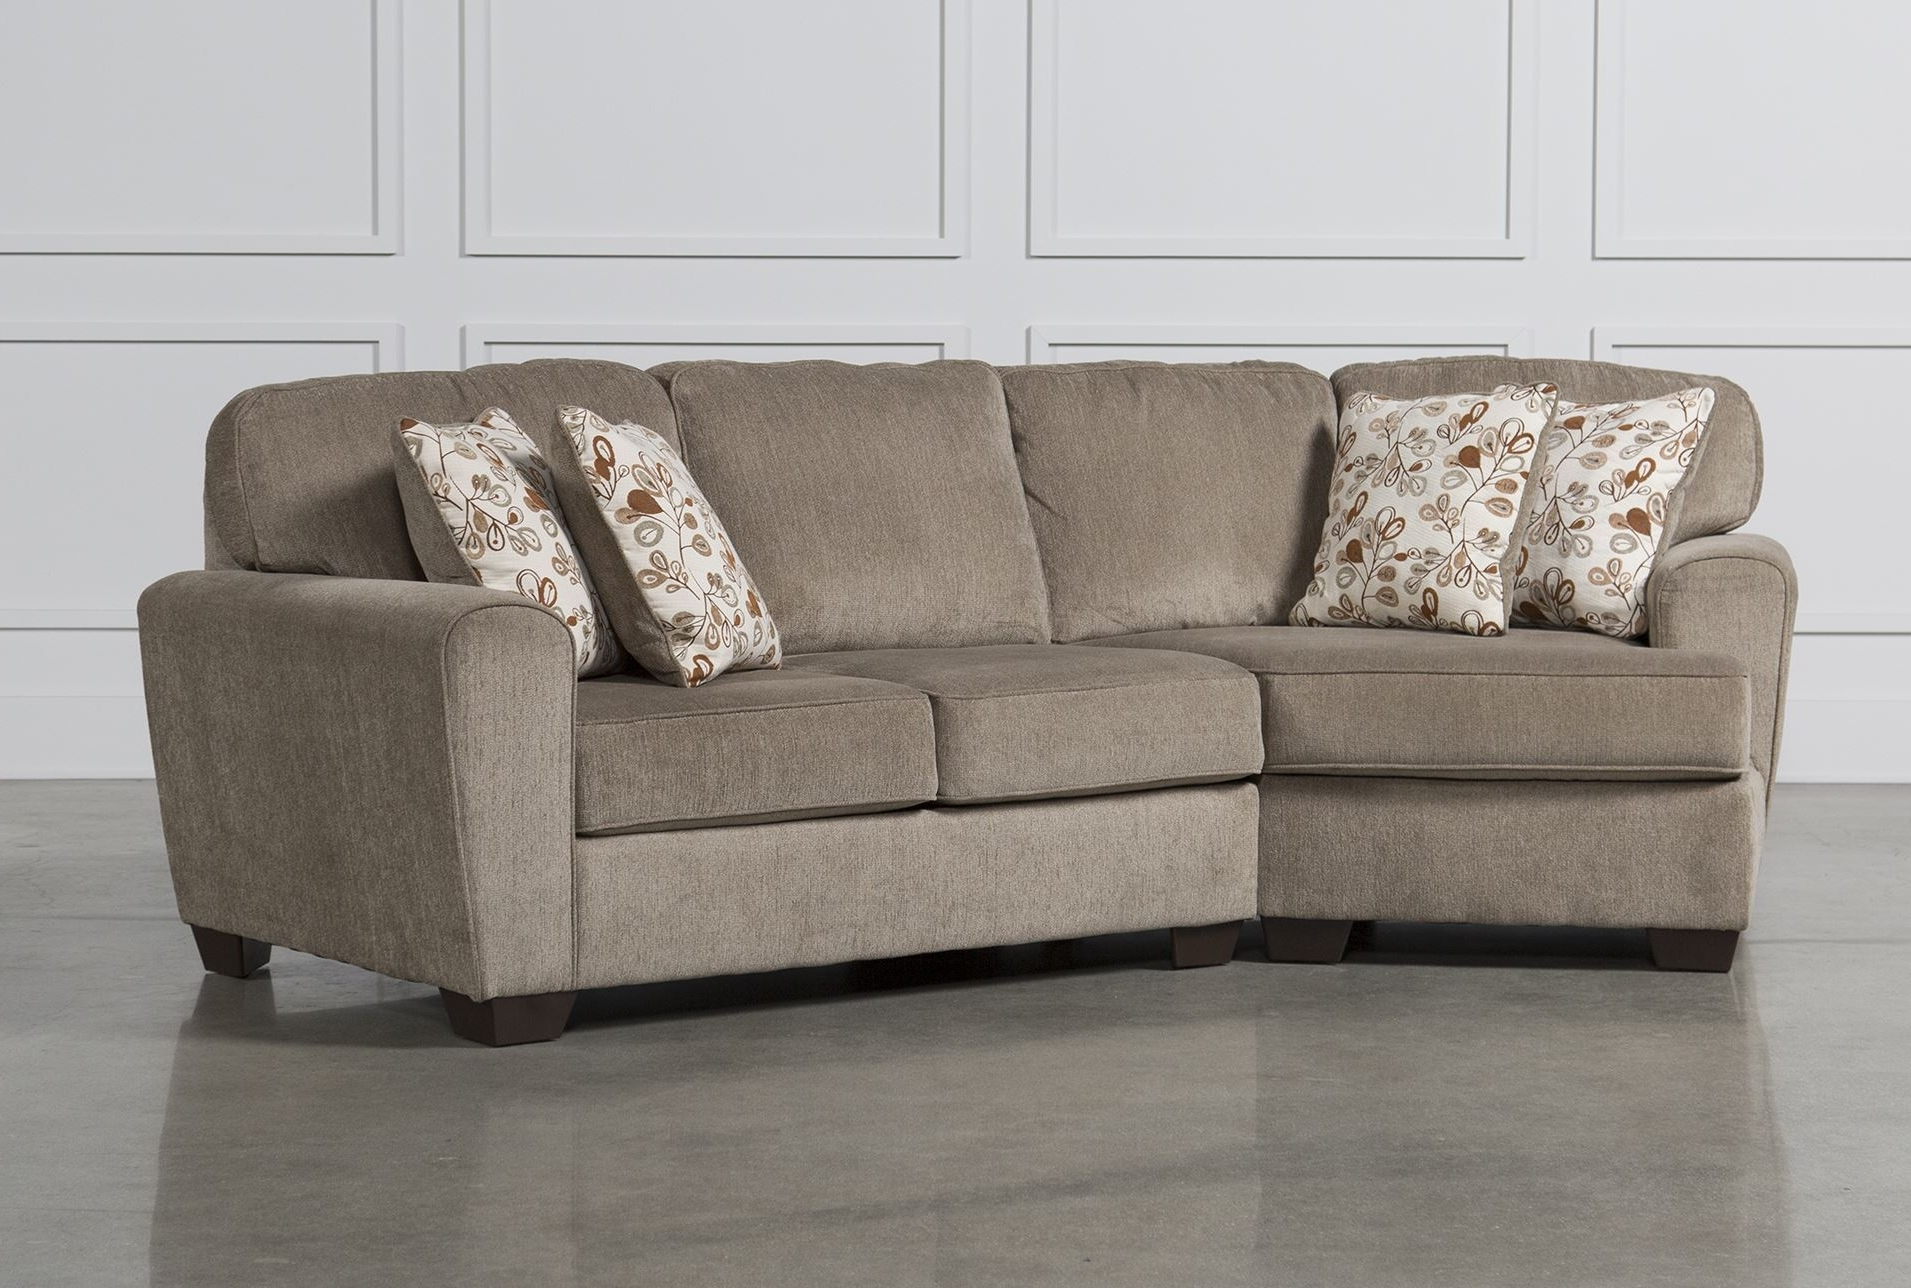 Cuddler Chaises With Newest Latest Trend Of Sectional Sofa With Cuddler Chaise 81 In Eco (View 7 of 15)